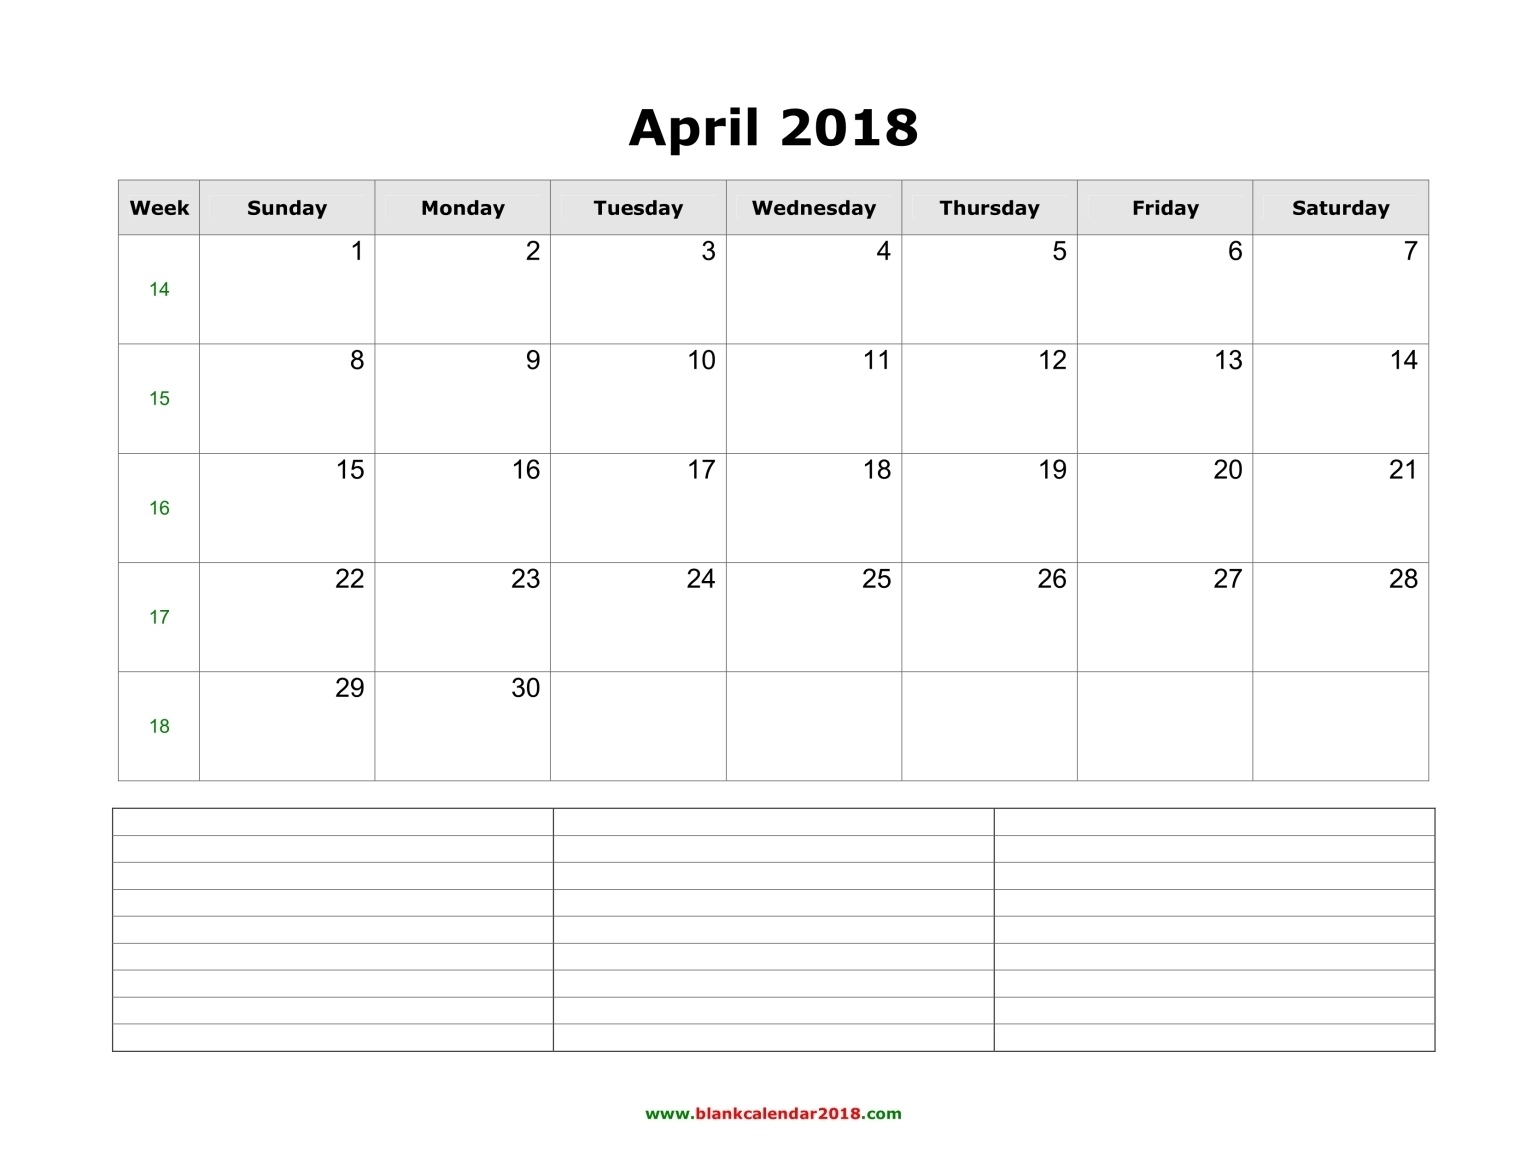 April Calendar With Notes : Blank calendar for april